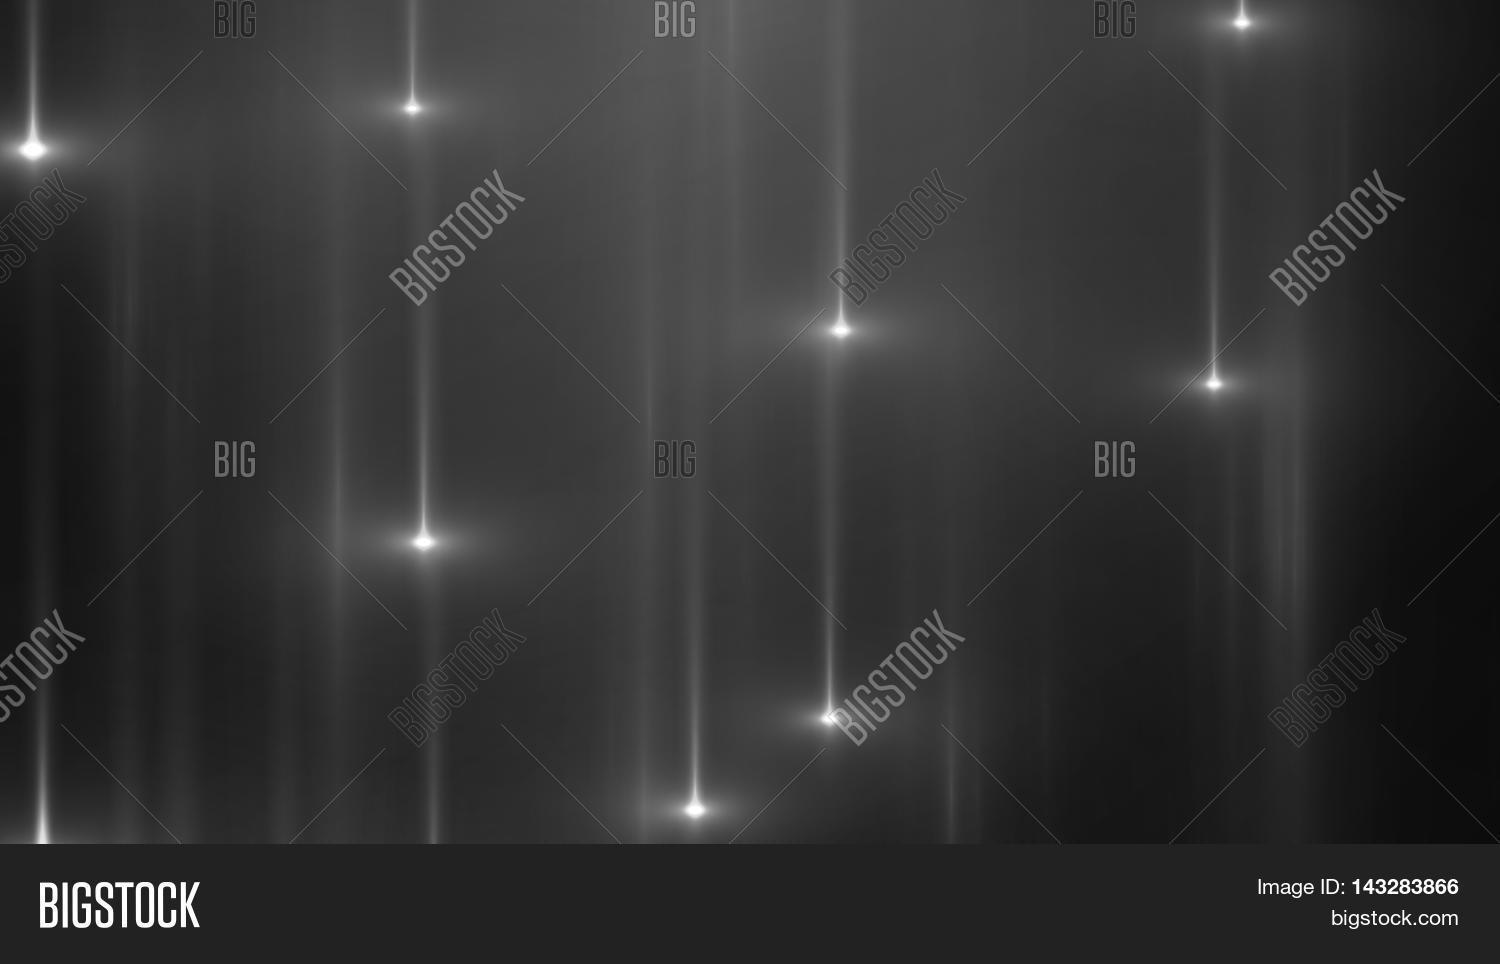 3d Render Abstract Image Photo Free Trial Bigstock